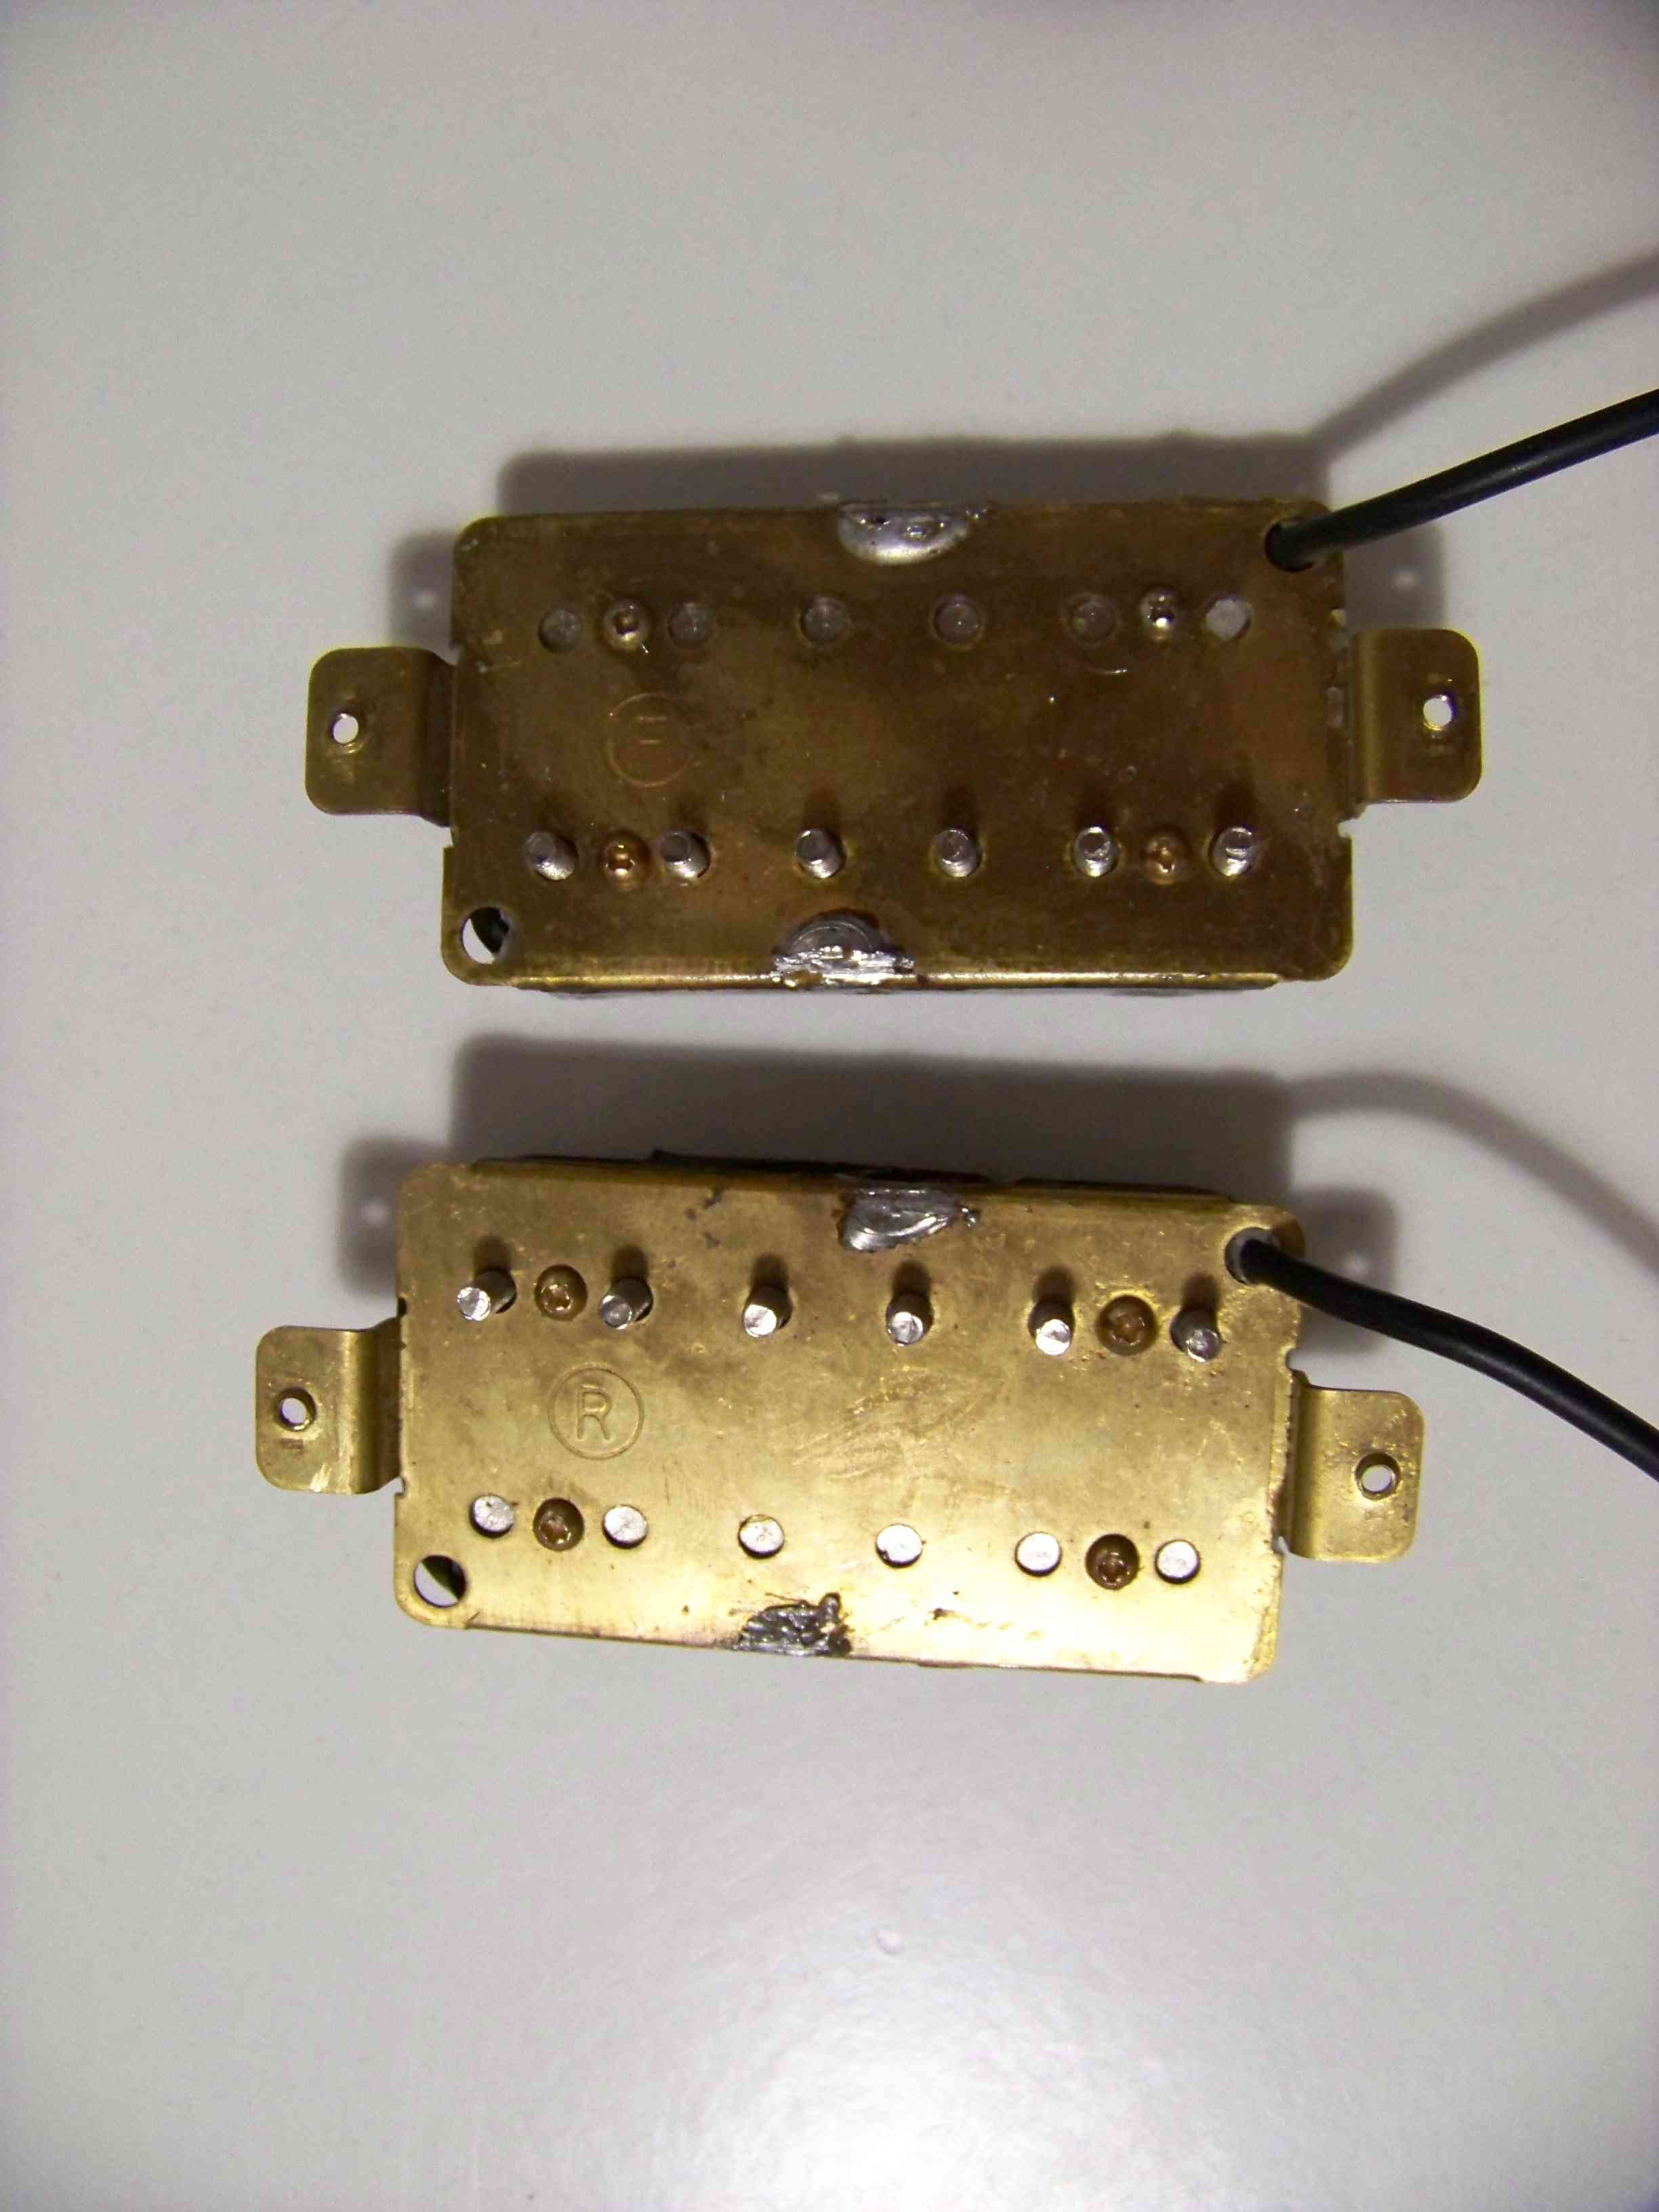 Magnificent Ibanez 3 Way Switch Wiring Tiny Ibanez 5 Way Switch Regular Car Alarm System Diagram Coil Tap Wiring Young 3 Pickup Les Paul Wiring Diagram SoftLes Paul 3 Pickup Wiring Diagram Ibanez ACH1 Humbucker Image (#141672)   Audiofanzine